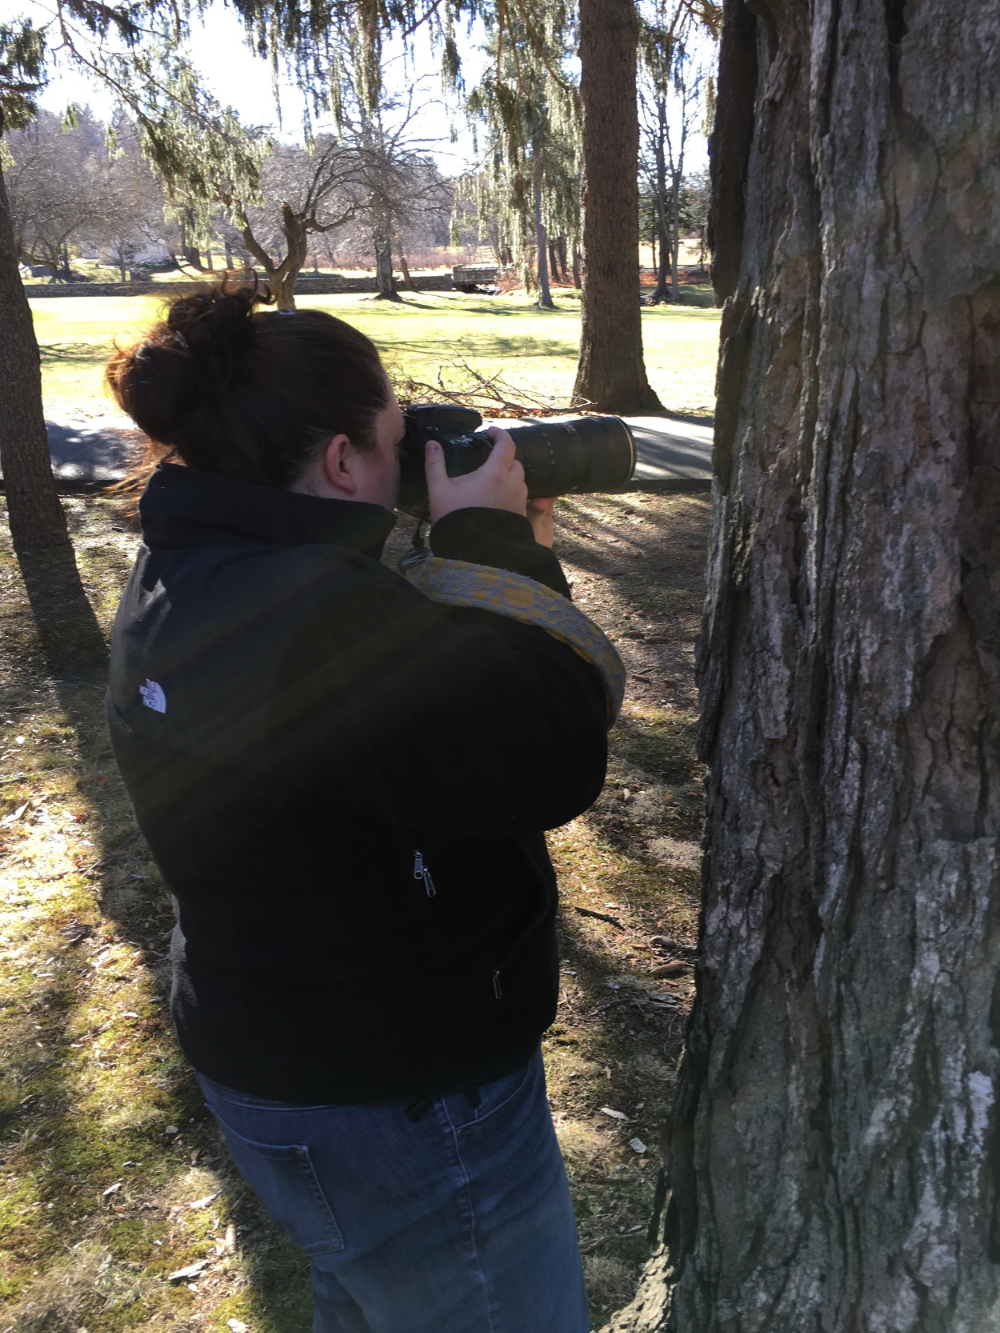 Photo courtesy of my amazing assistant/husband who is also pretty great at hiding behind trees.